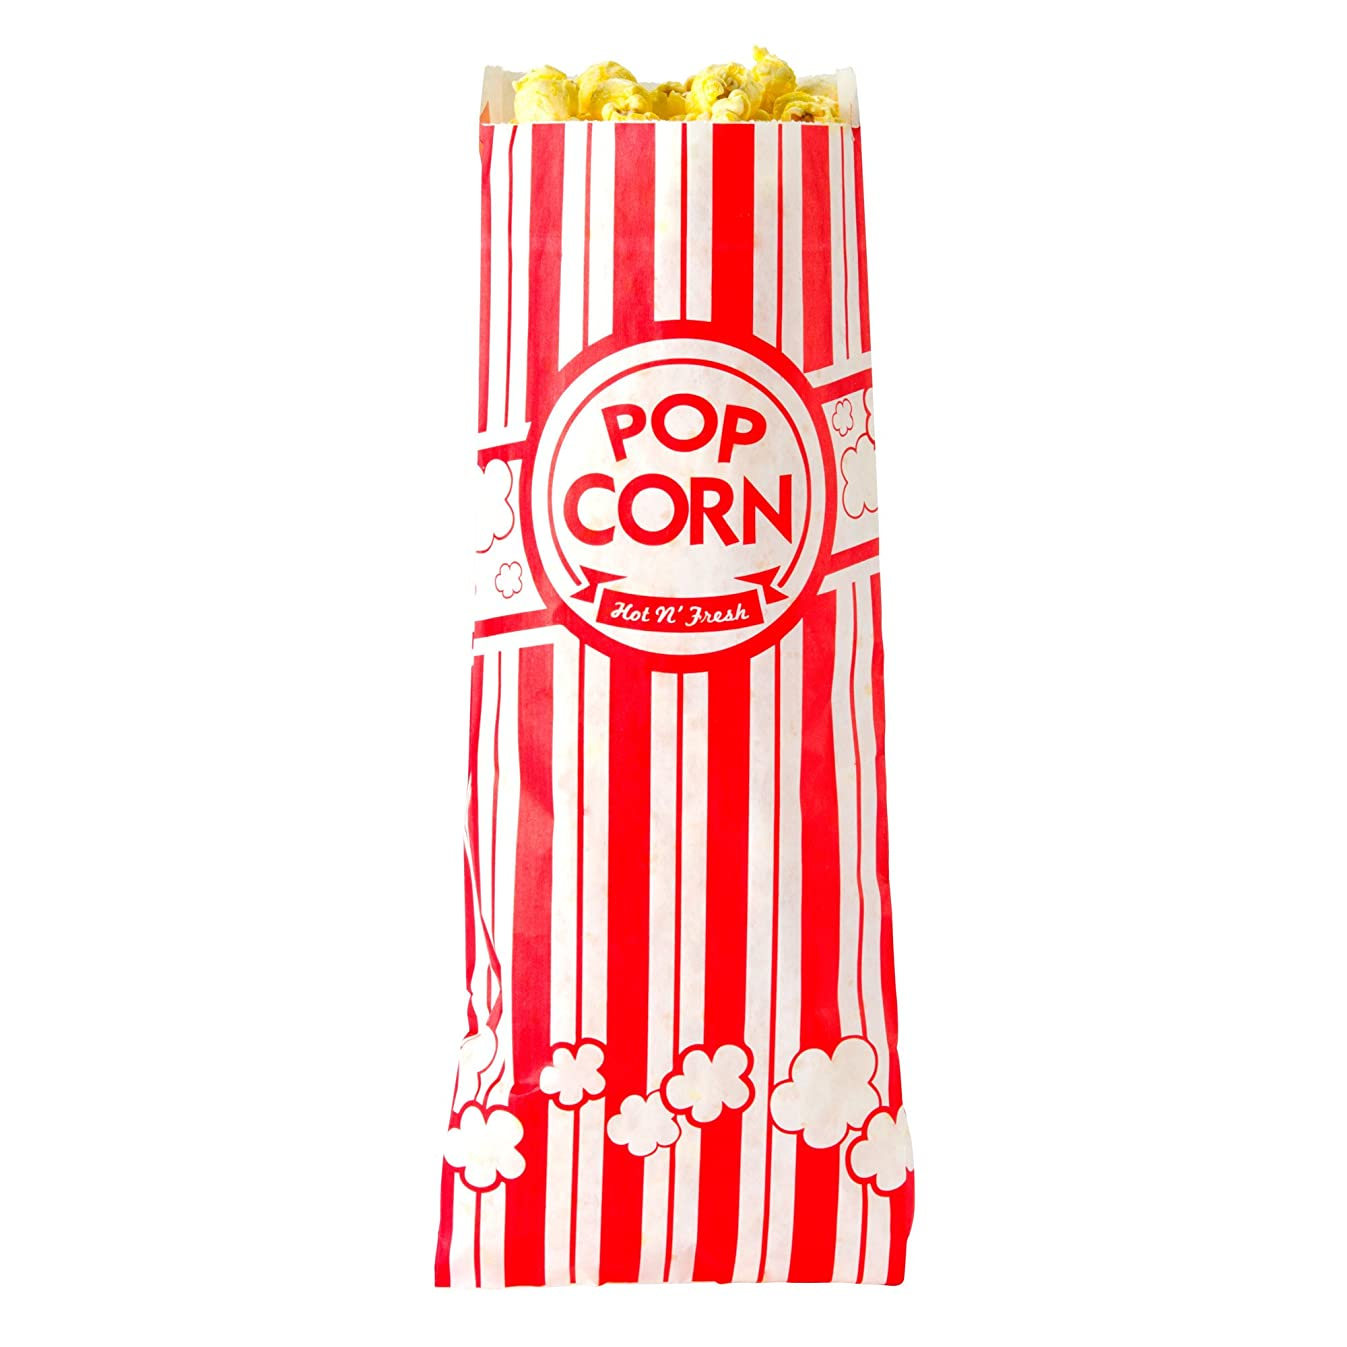 Concession Essentials CE Popcorn Bags-500 Popcorn Bags, 1 oz. (Pack of 500), 2